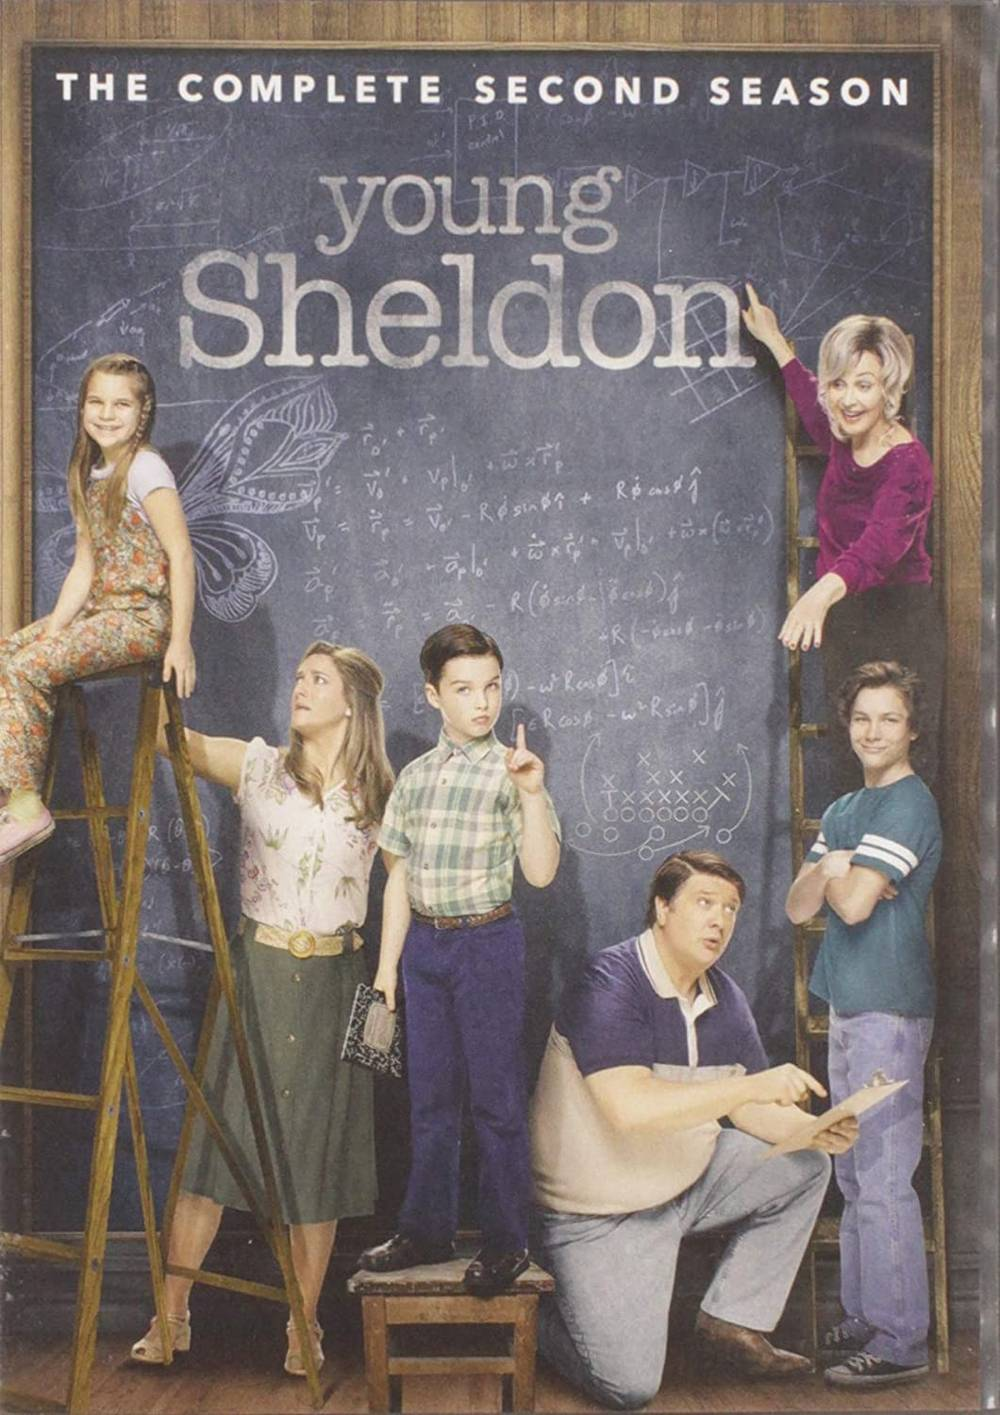 Young Sheldon [TV Series] - Young Sheldon: The Complete Second Season